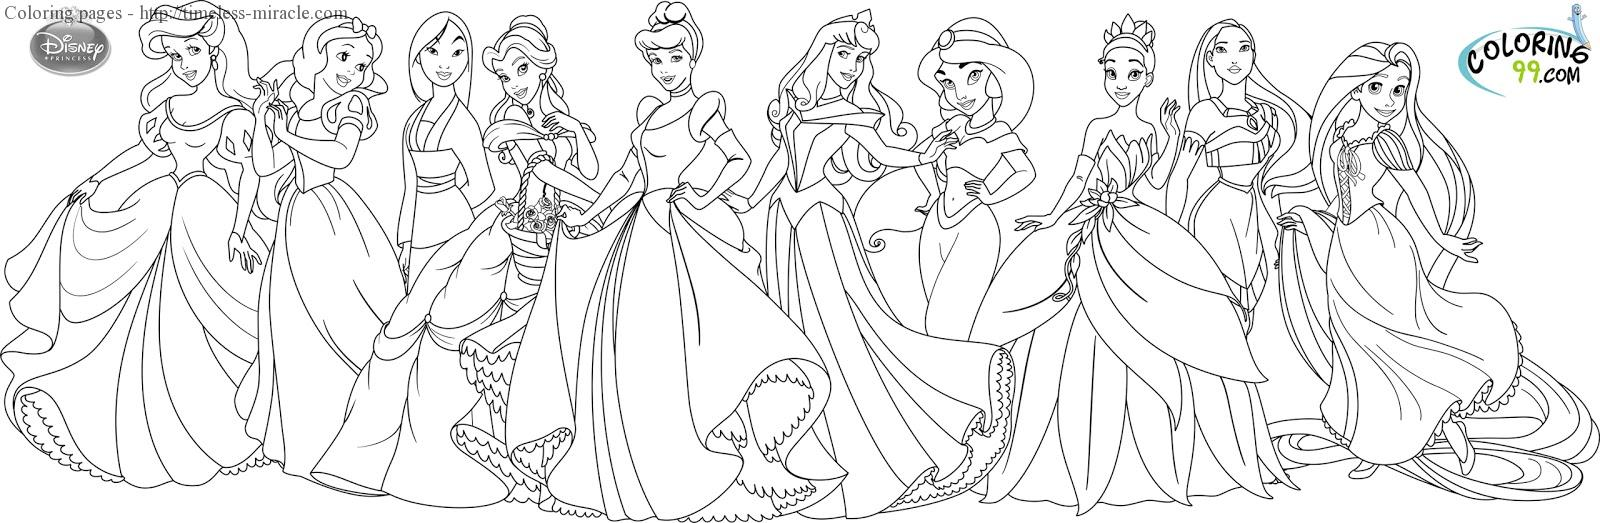 - All Disney Princesses Coloring Page - Timeless-miracle.com